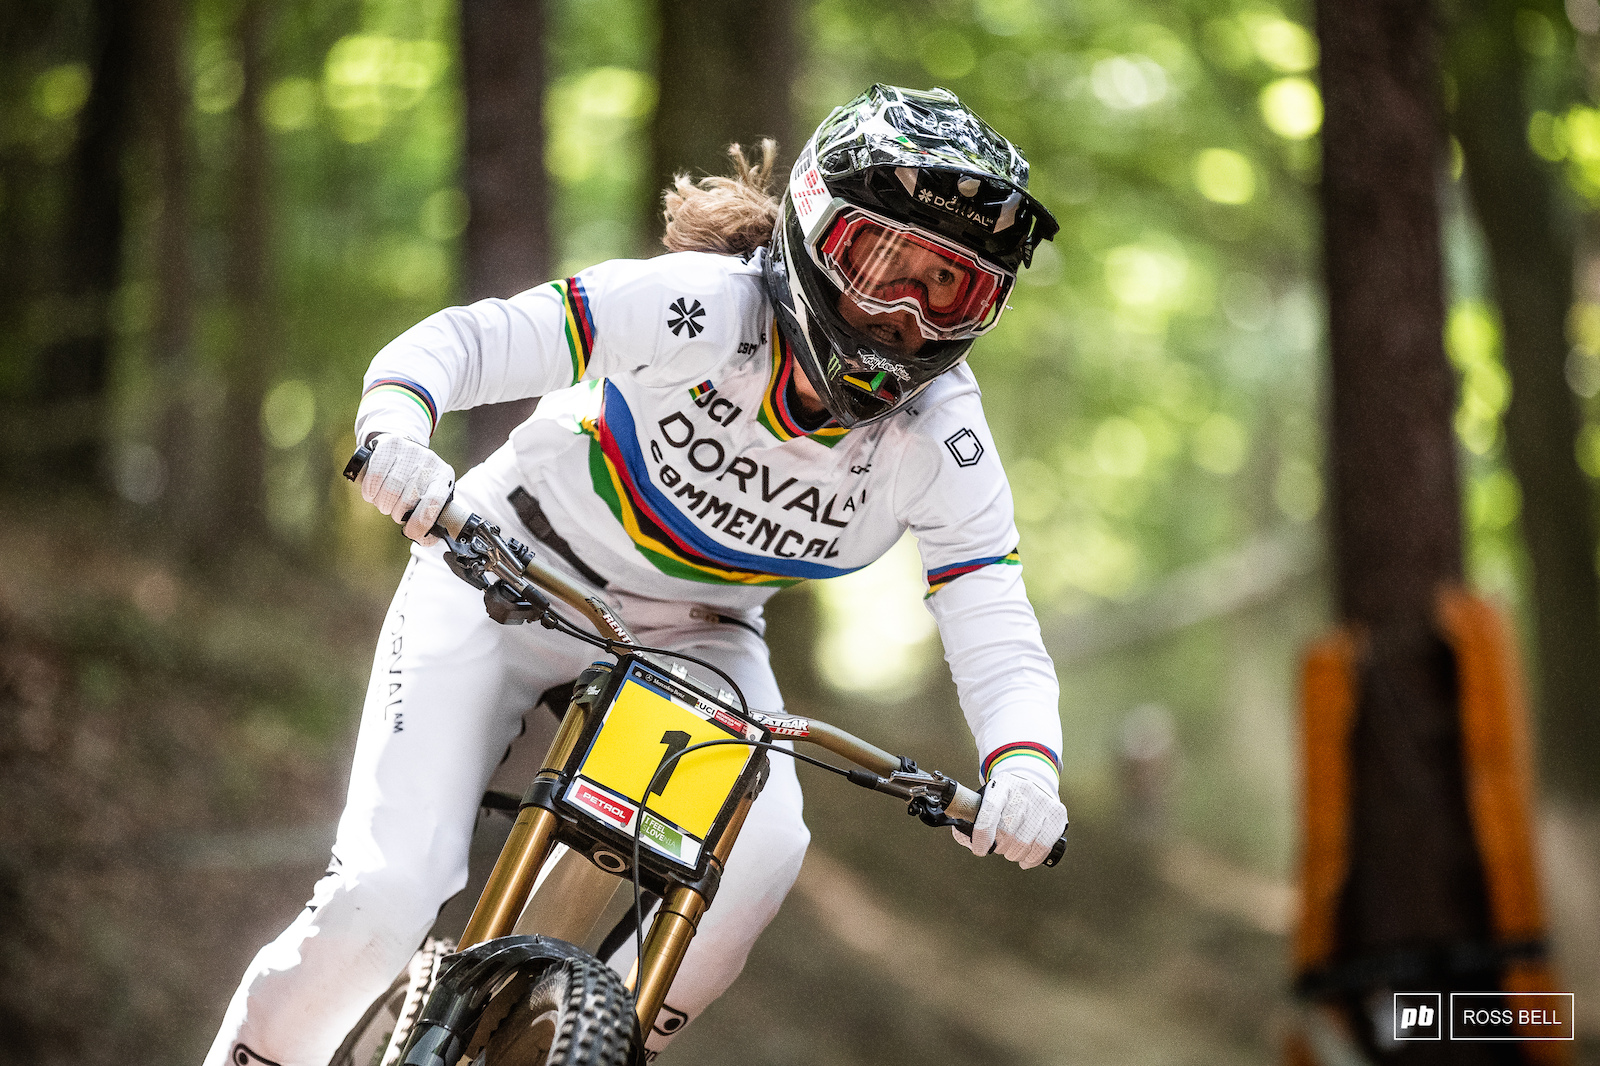 World Champ Camille Balanche with the number 1 plate on her bike for good measure. She ended the day third fastest.